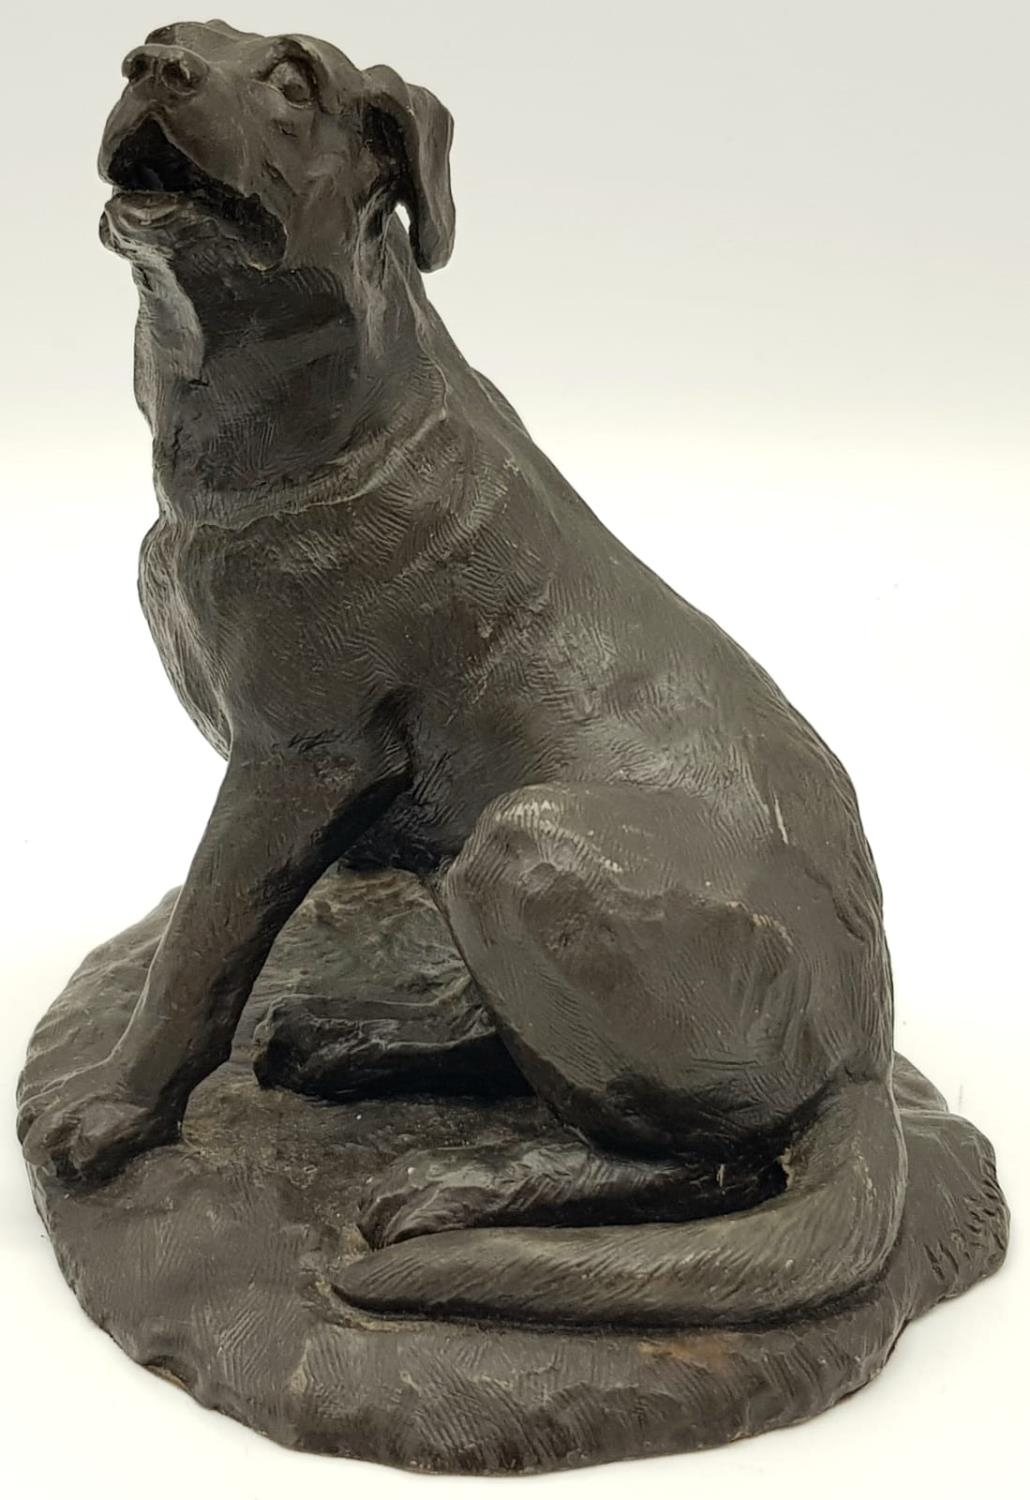 A BRONZE FIGURE OF A SITTING DOG. 767gms 14cms tall. - Image 2 of 5